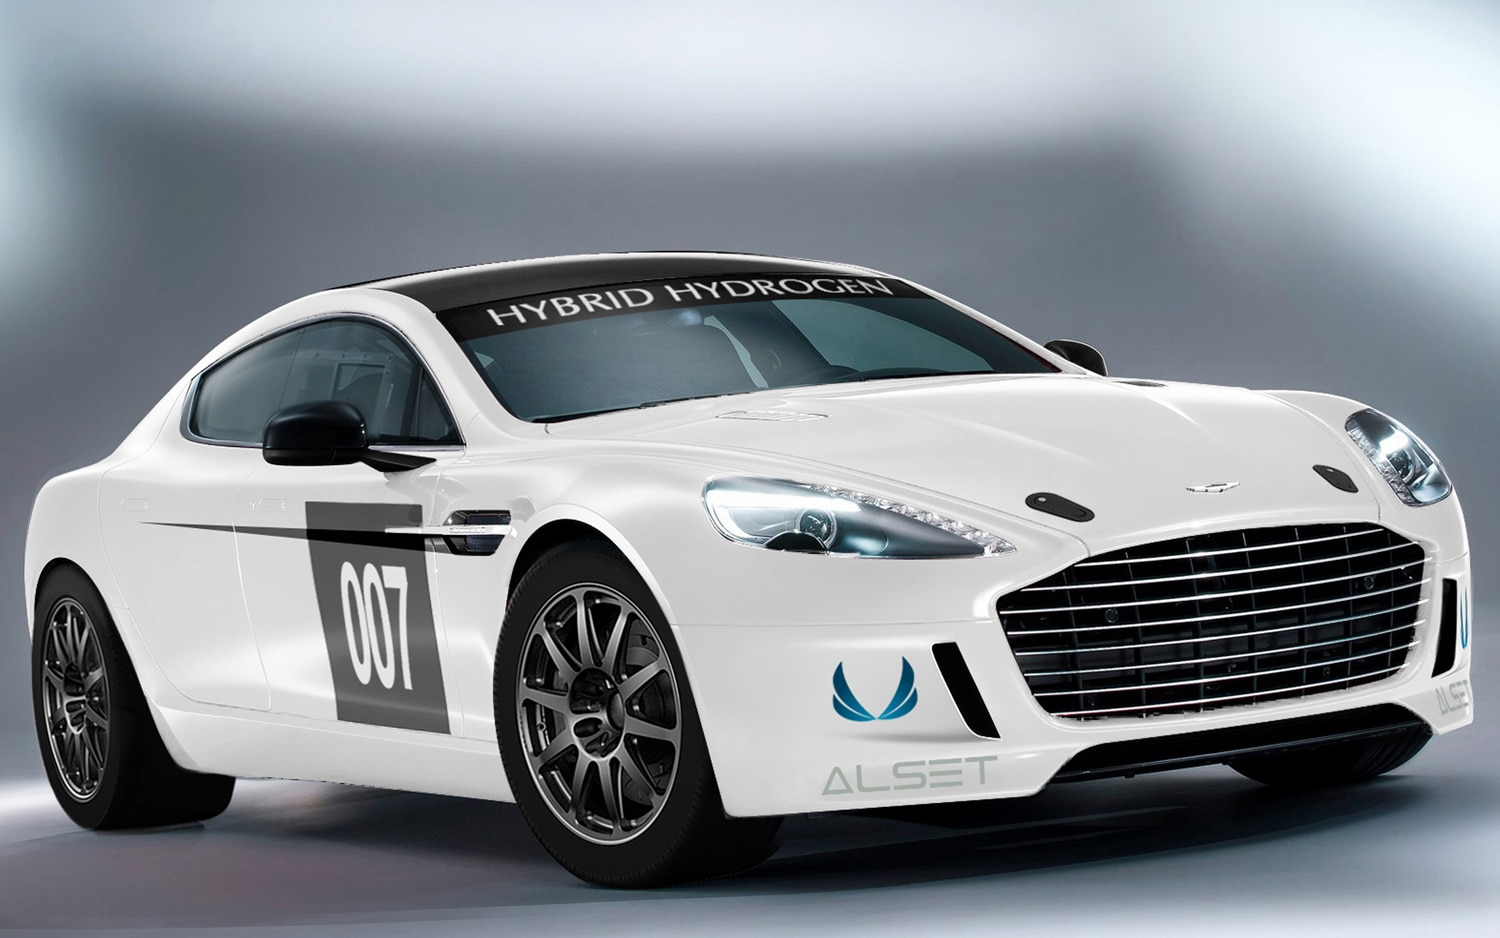 2013 Aston Martin Rapide S Hydrogen Racer Front View1